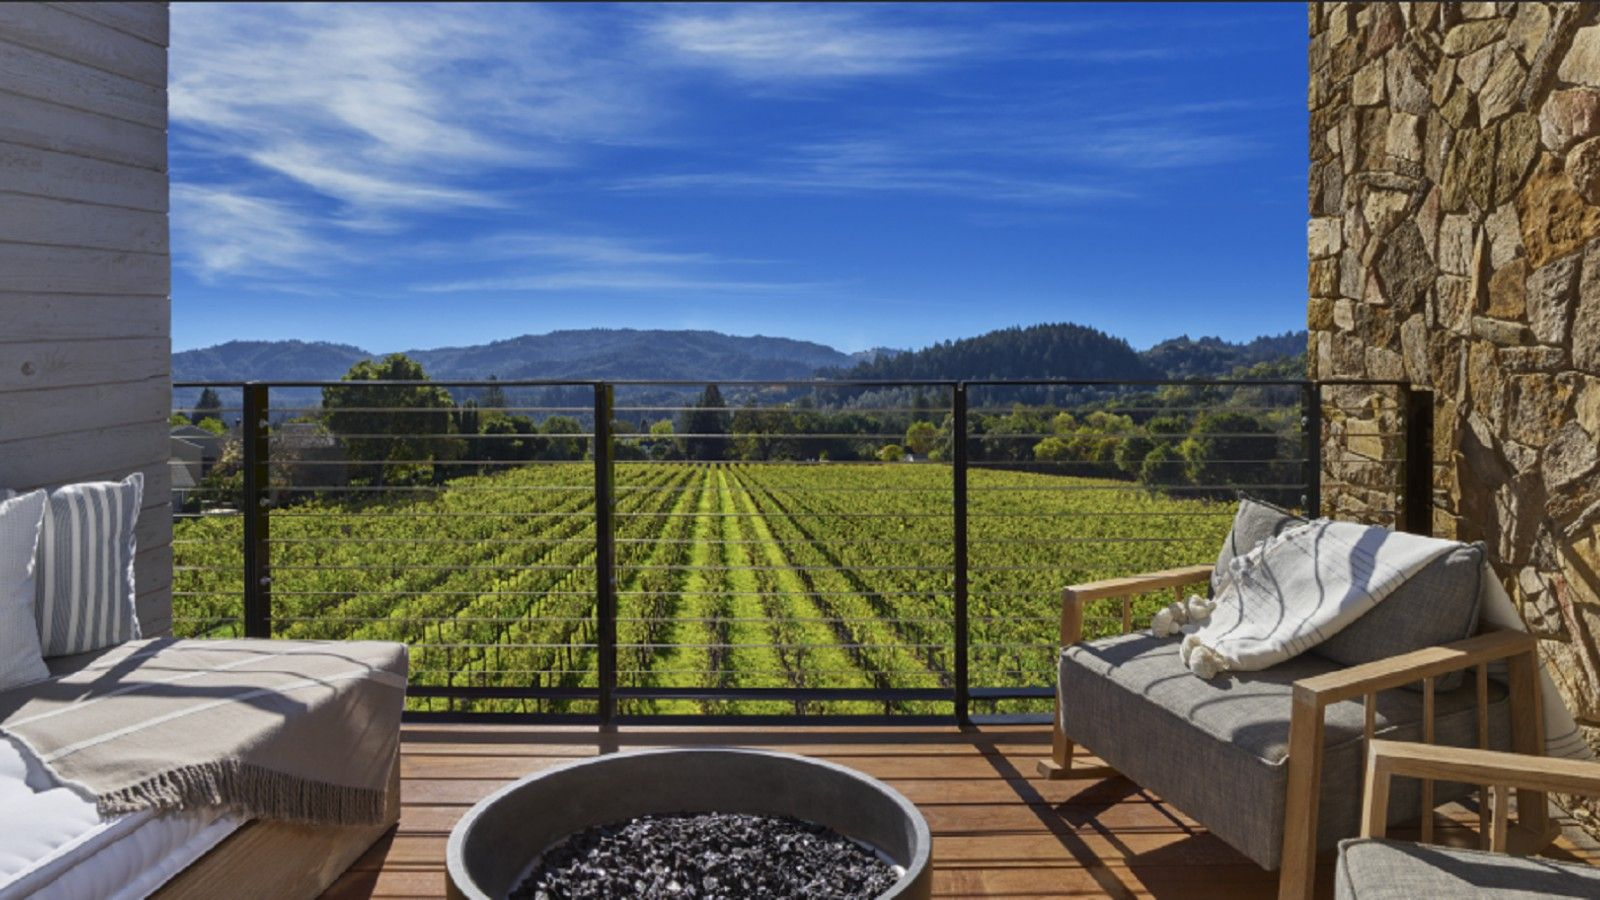 Las Alcobas Napa Valley - Deluxe King Vineyard View Deck